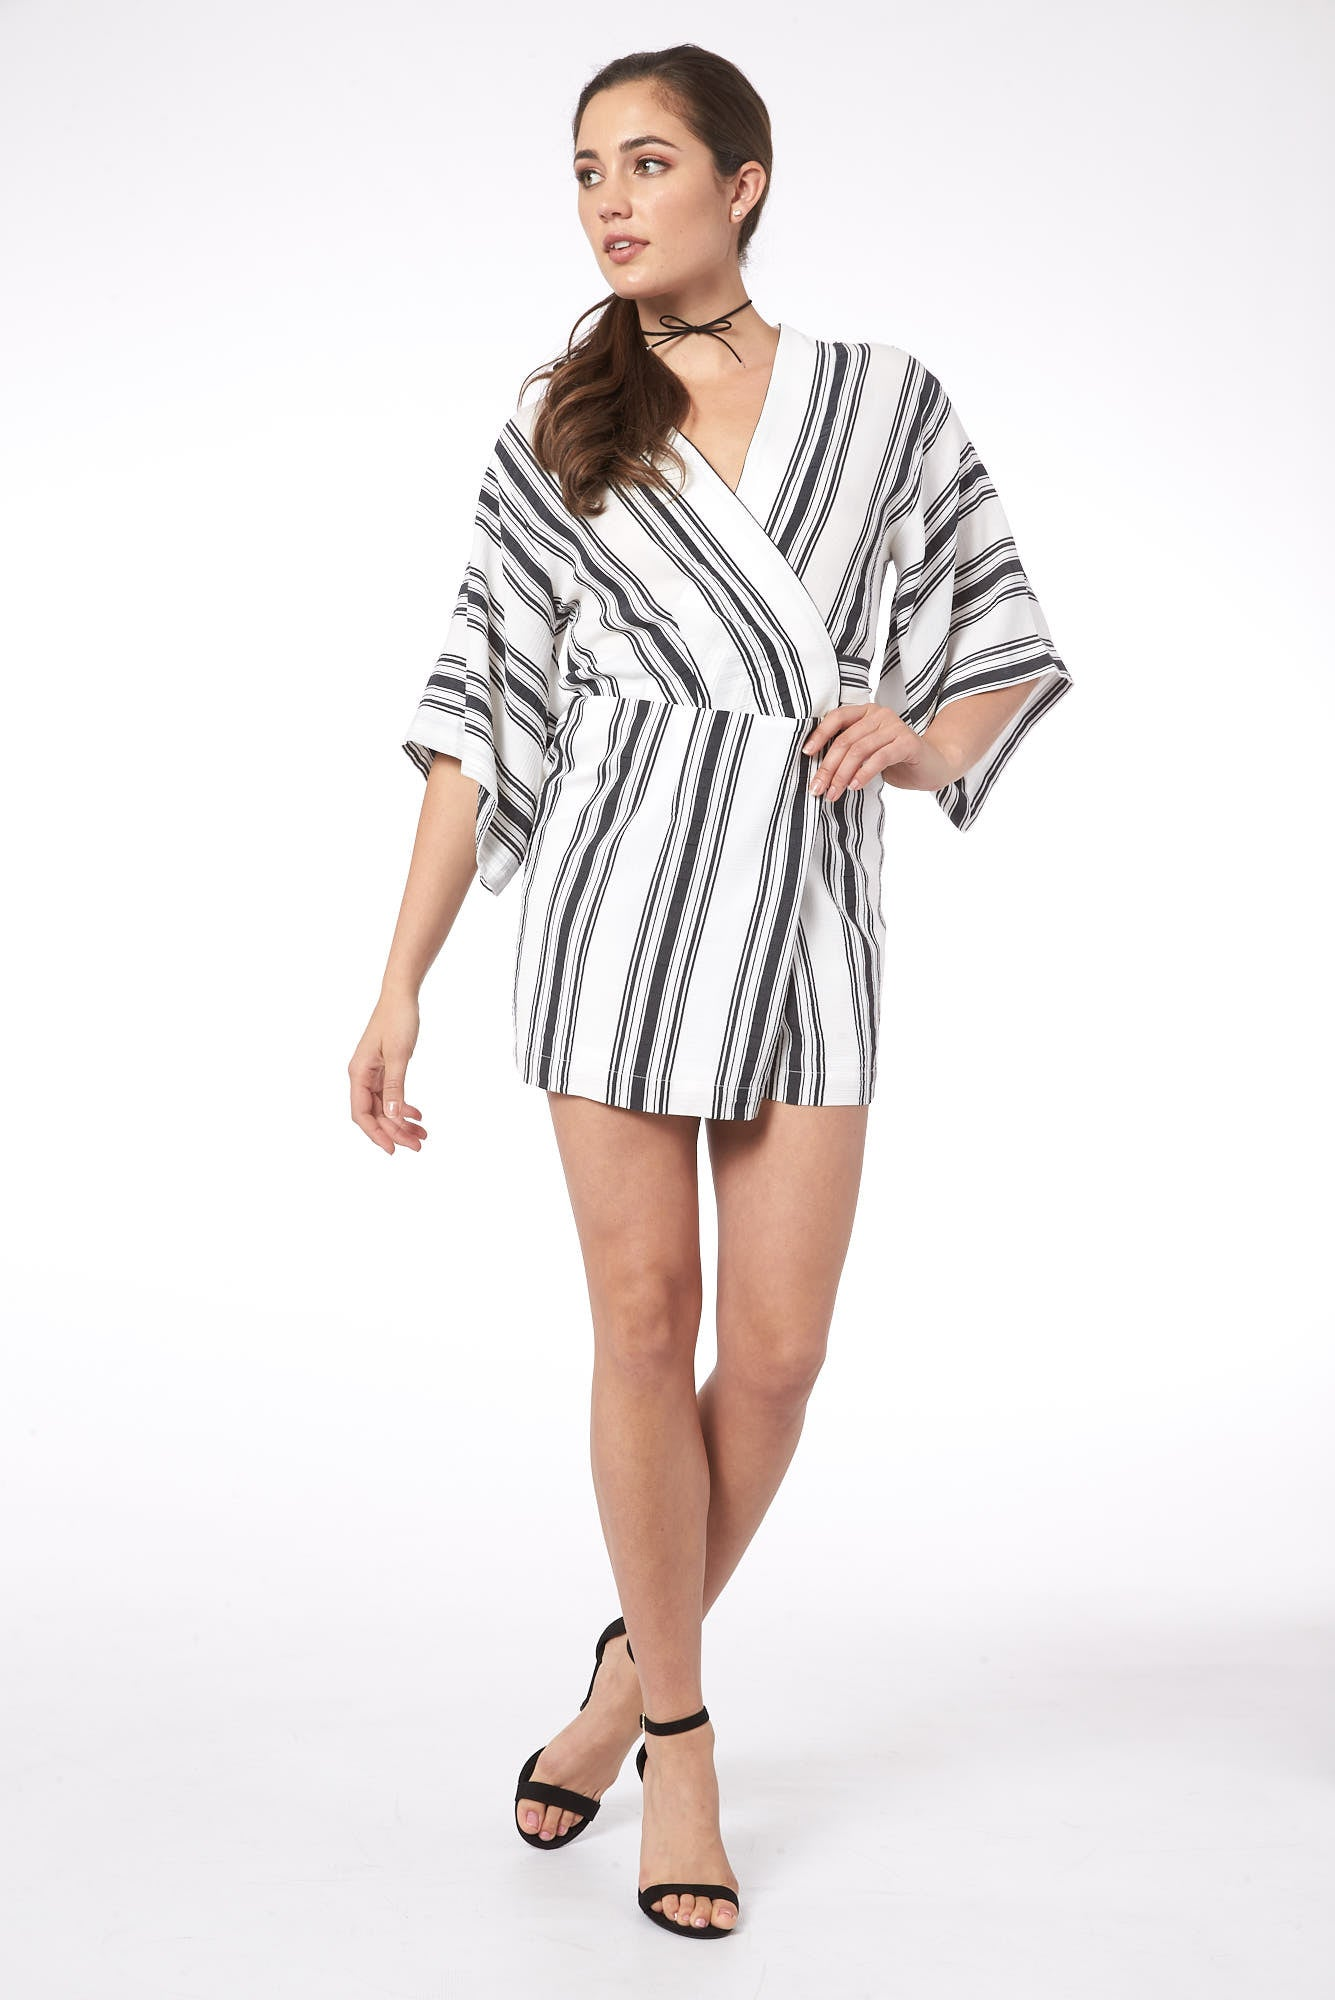 Lady of the Mallorca Island Striped Kimono Romper